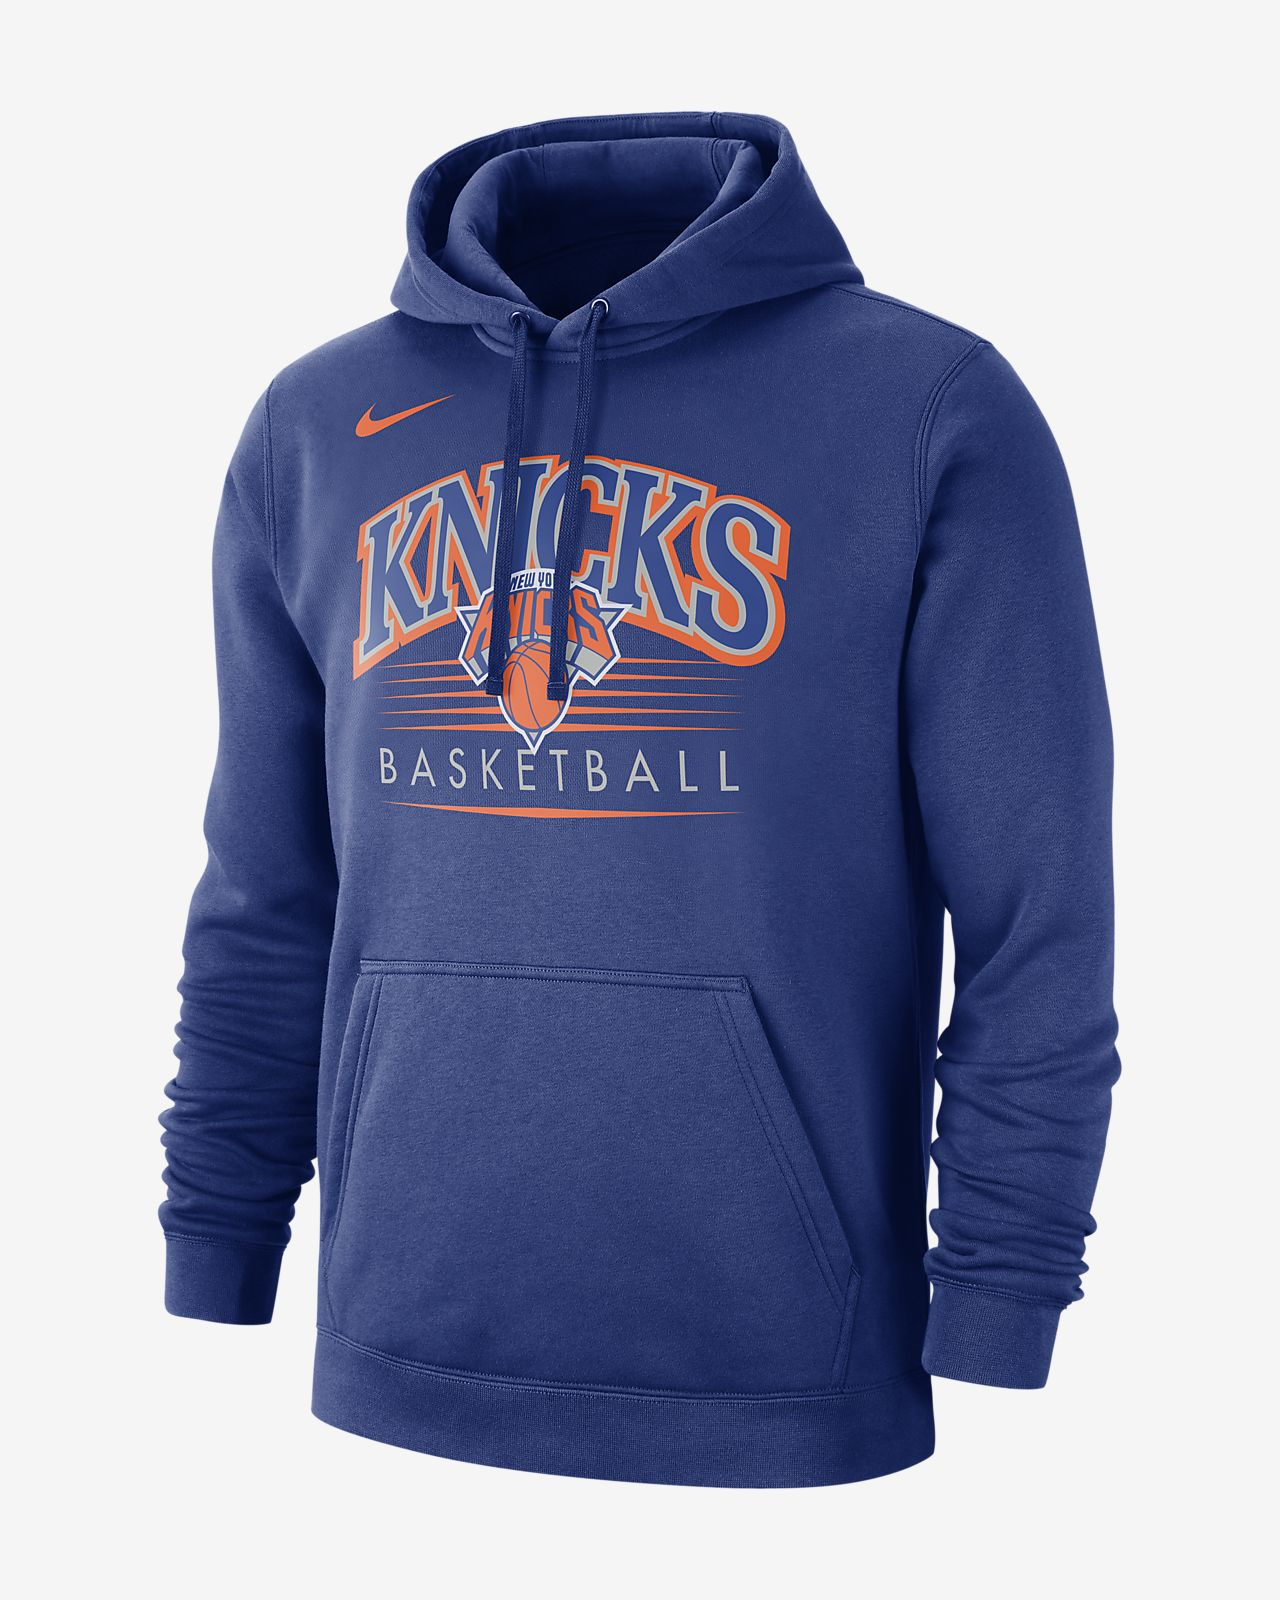 new style 1c253 cf9e3 New York Knicks Nike Men's NBA Hoodie